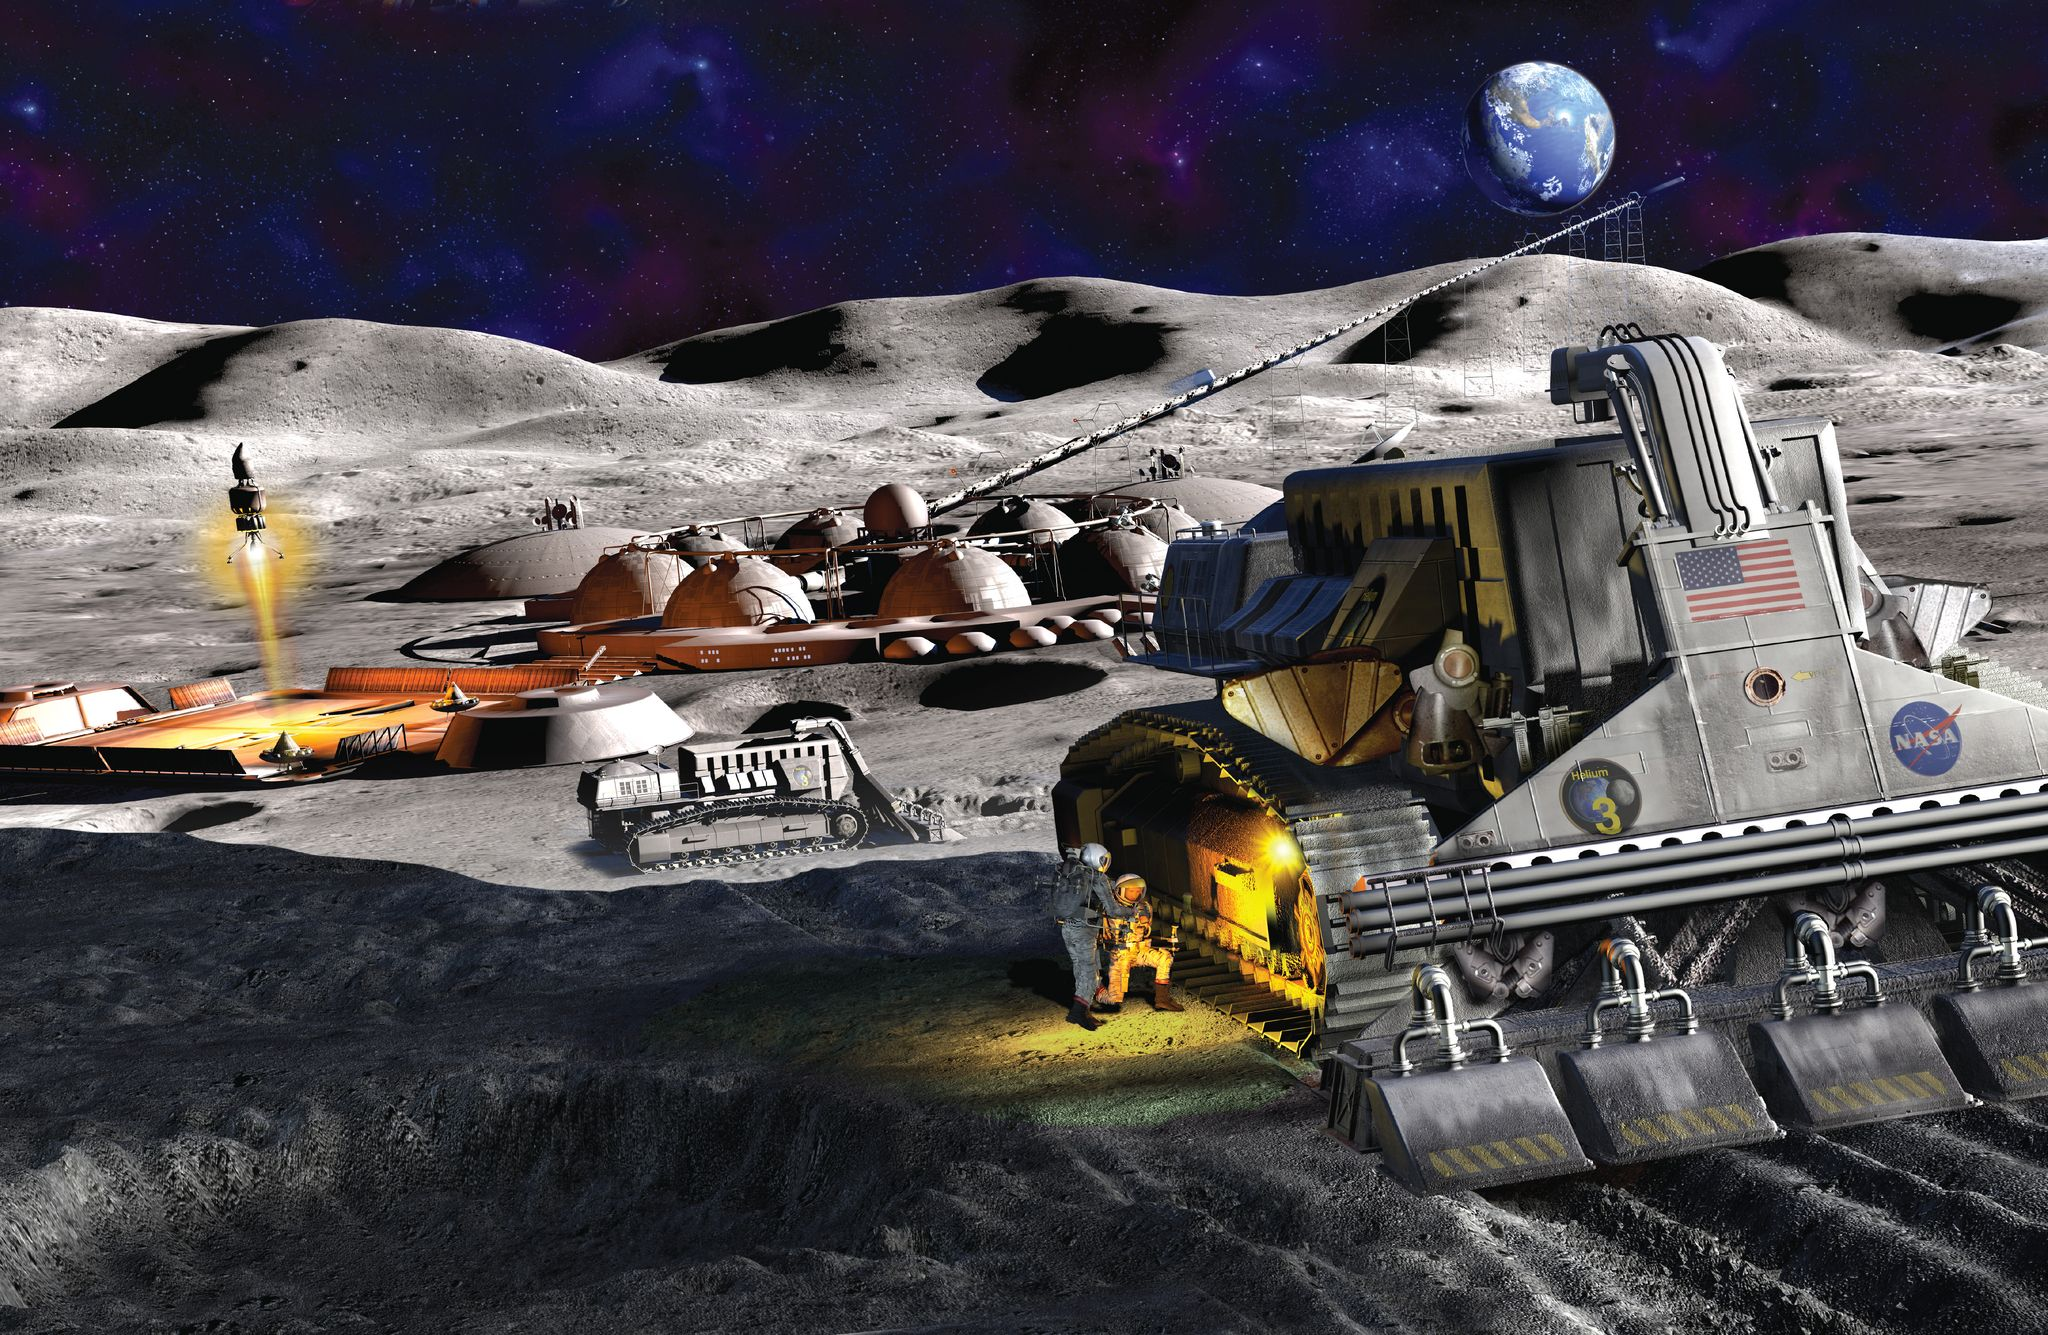 Digging Up Regolith: Why Mining the Moon Seems More Possible Than Ever